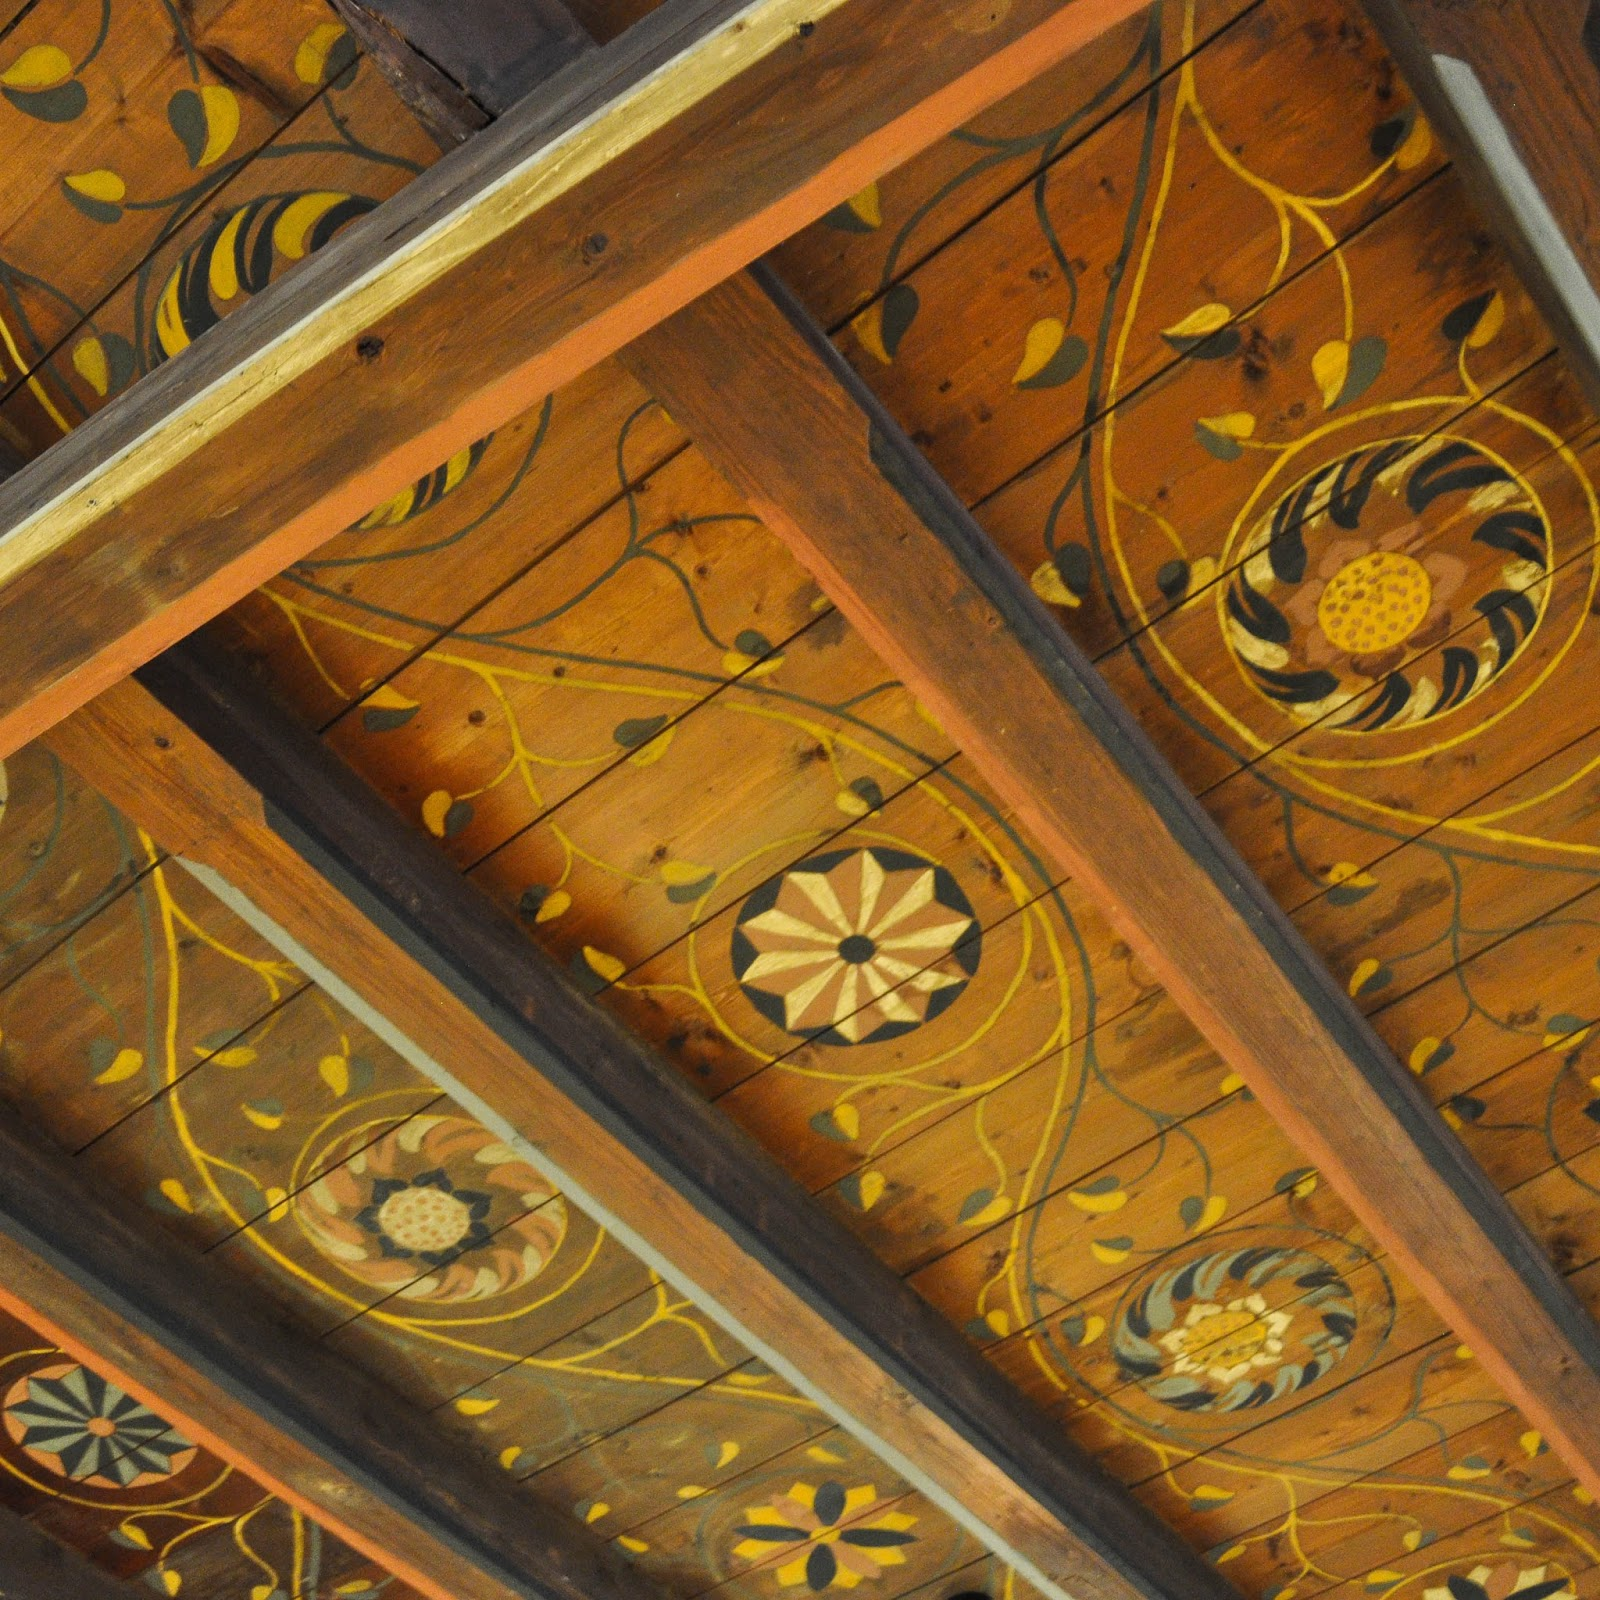 Painted ceiling, Runkelstein Castle, Bolzano, South Tyrol, Italy